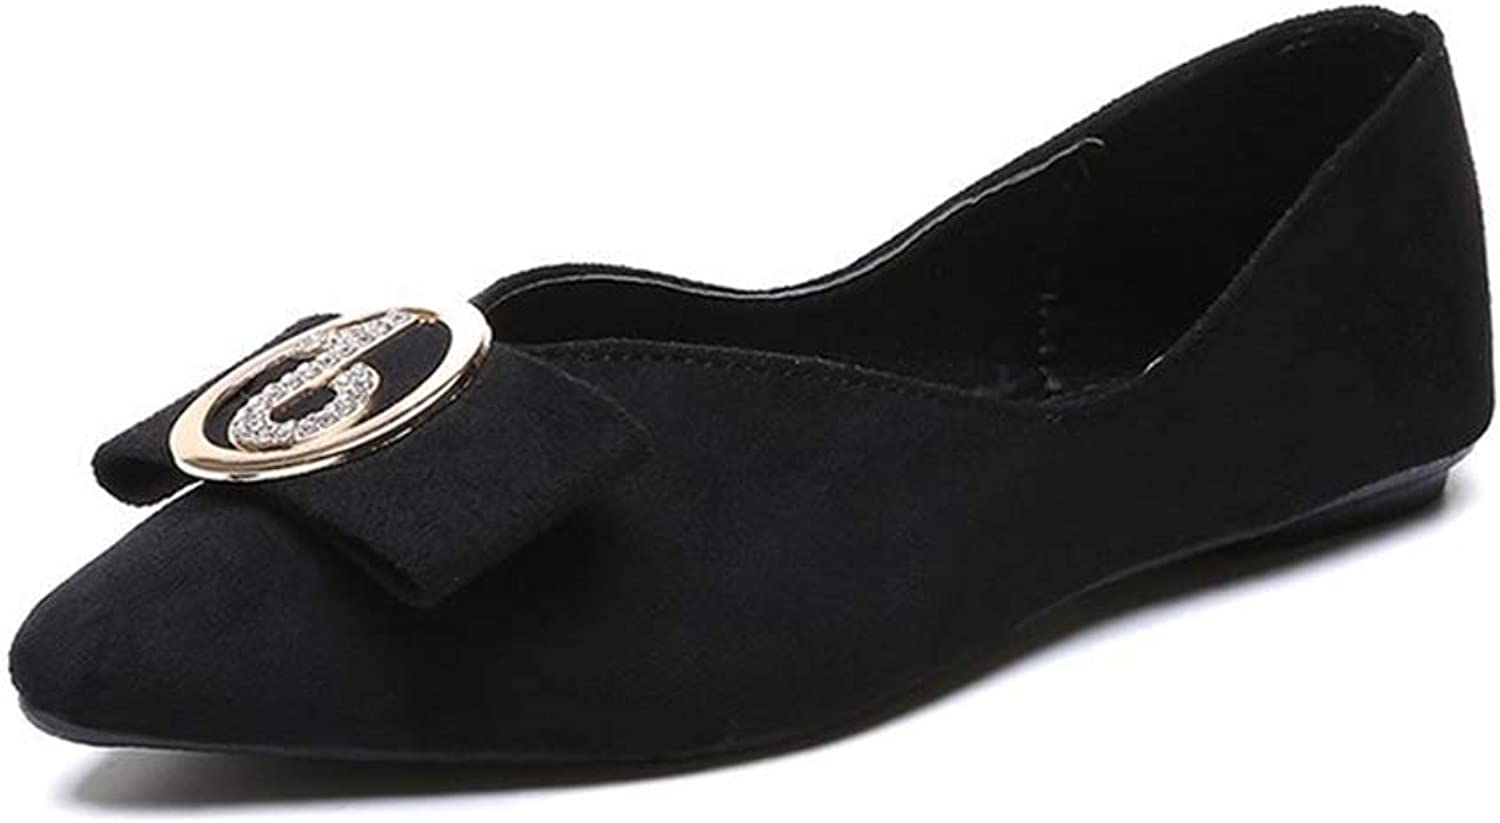 YUHJ Women's Round Buckle Flat with Single shoes Women's shoes Fashion Mother